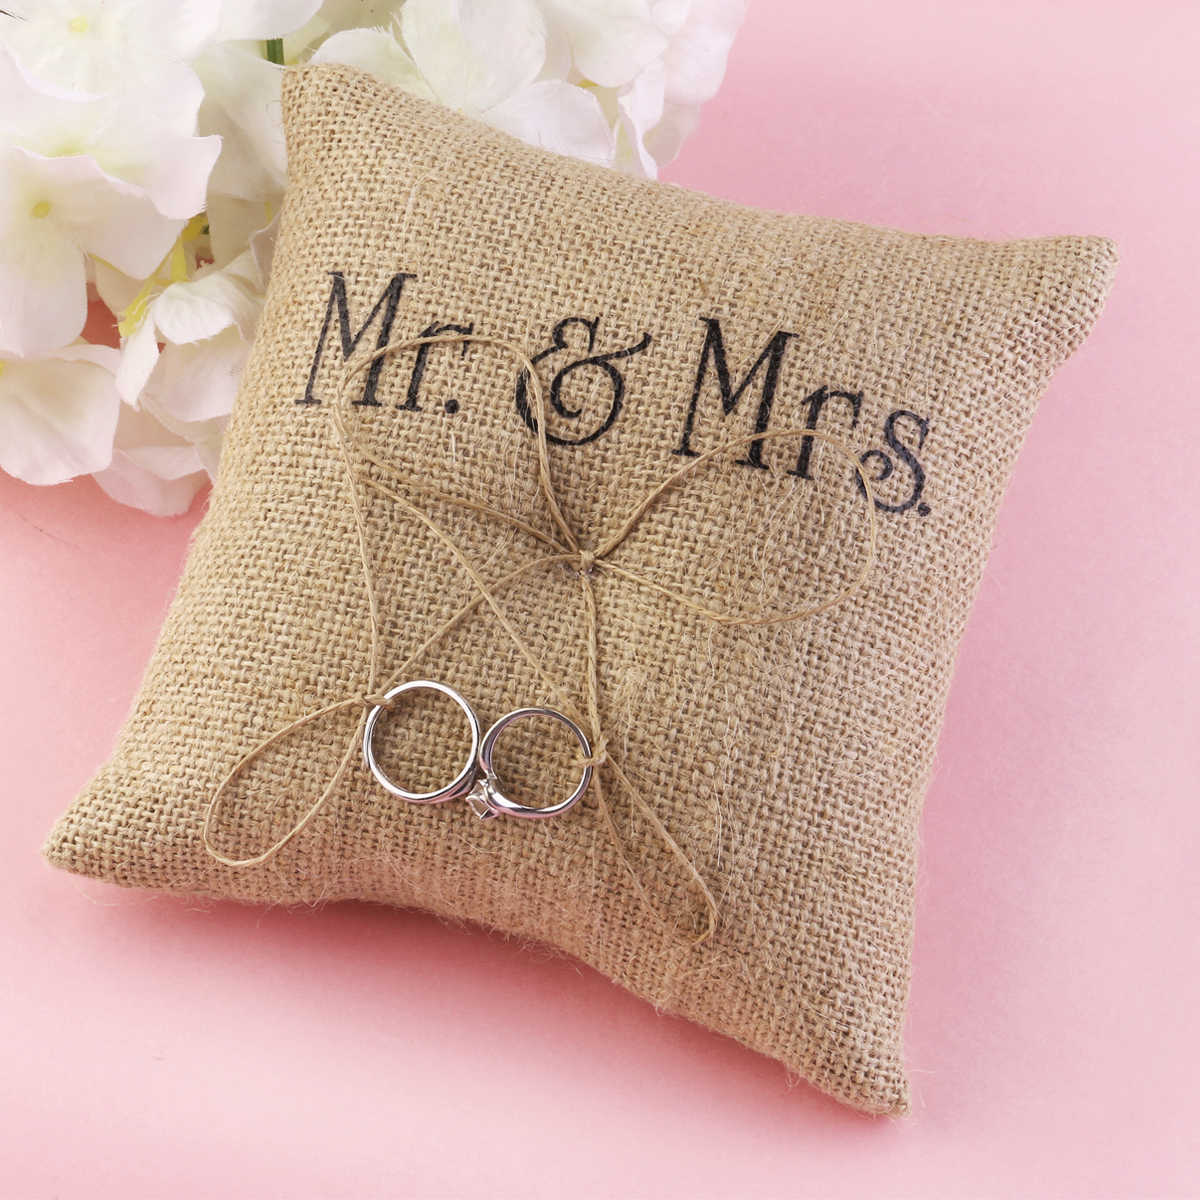 Romantic Bridal Wedding Ceremony Jute Pocket Ring Bearer Pillow Cushion Wedding Birthday Party Bathroom Decoration